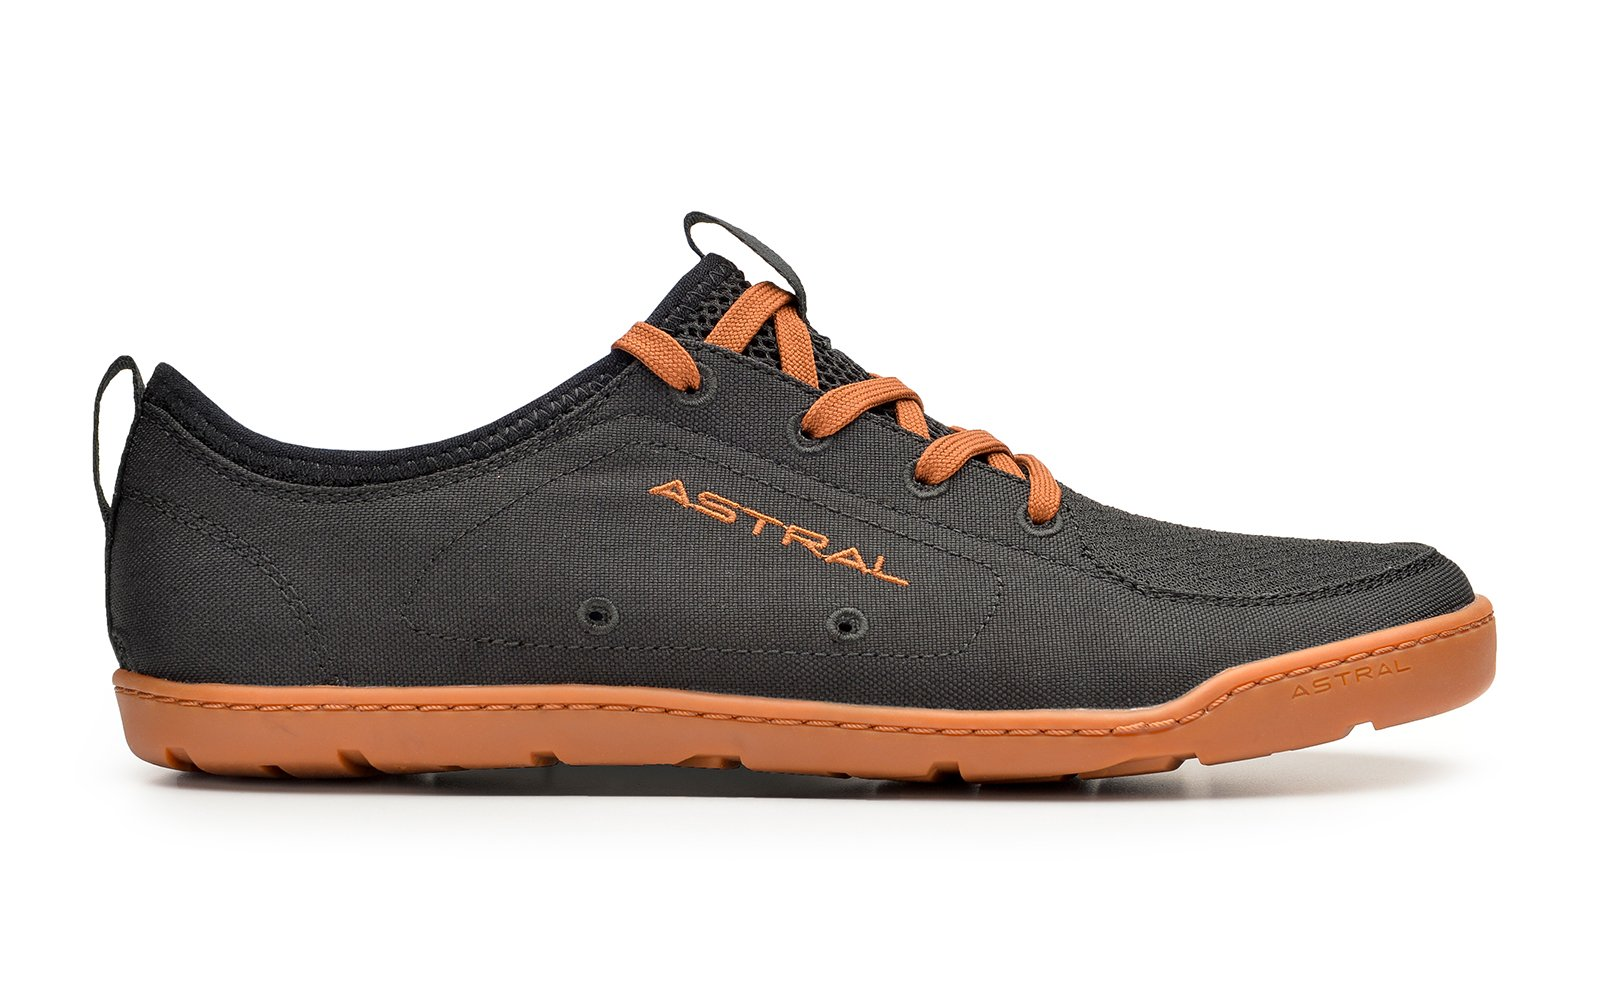 Astral Loyak Men's Water Shoes - Black/Brown